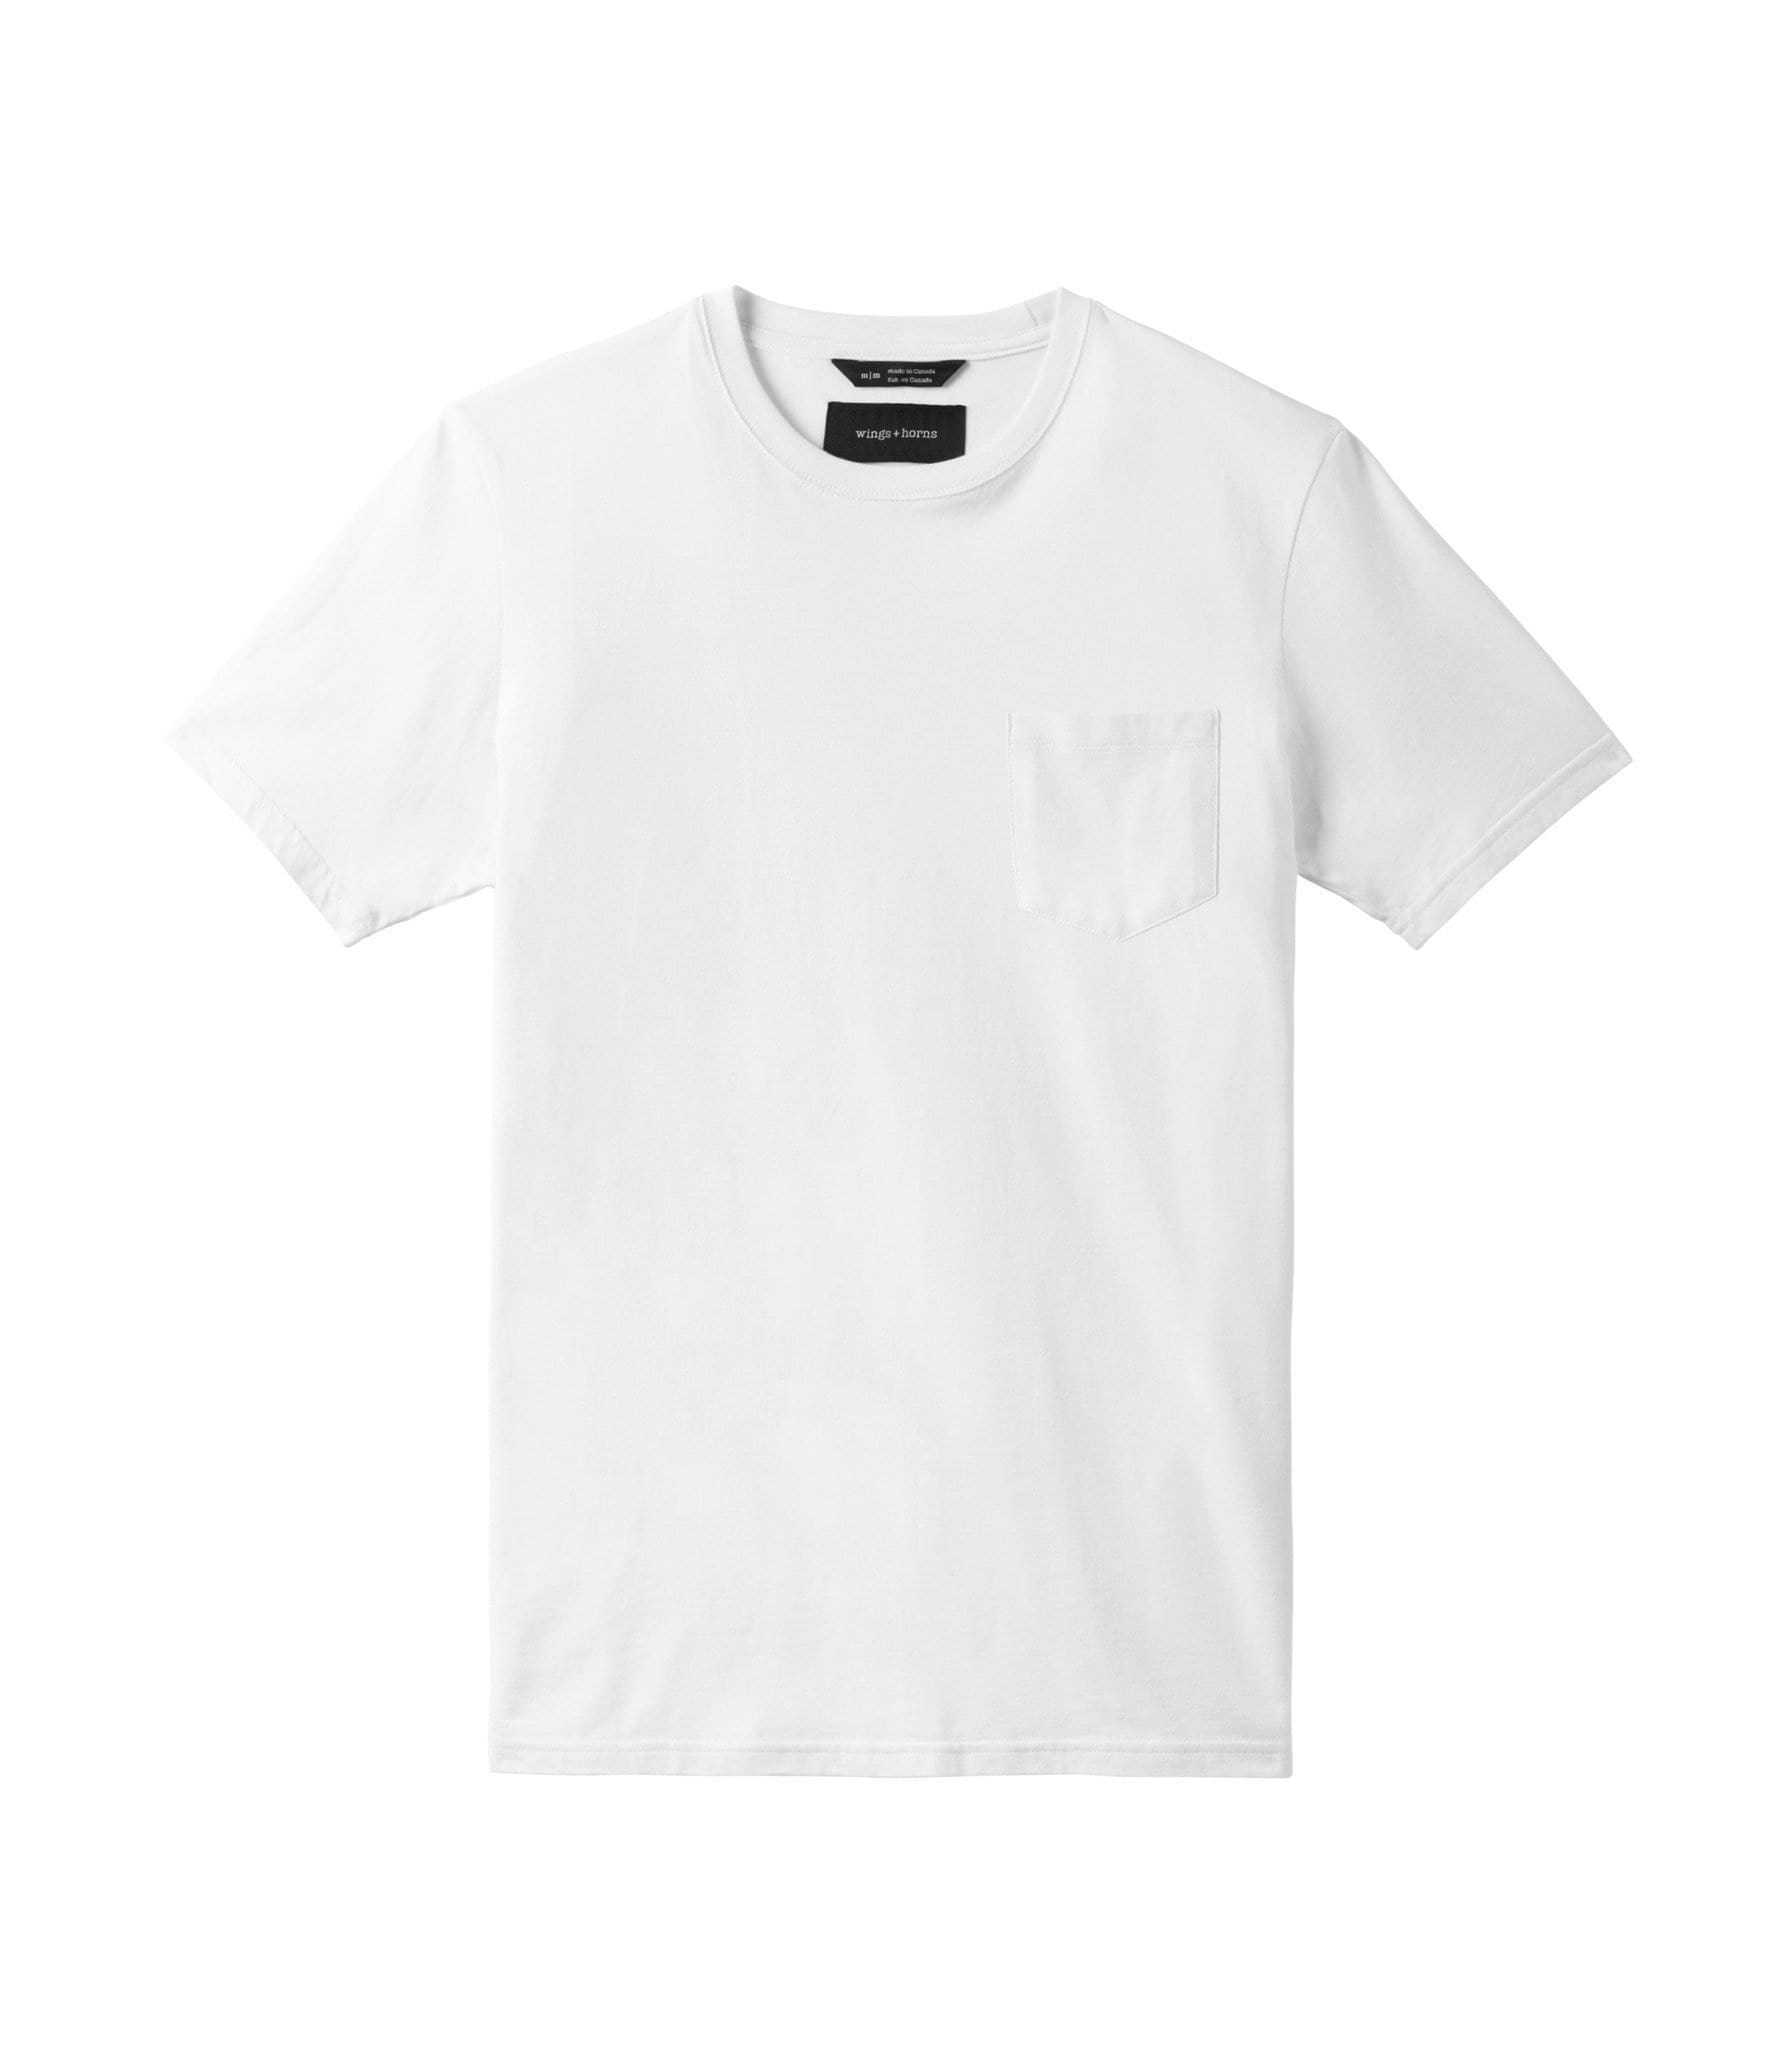 ORIGINAL POCKET T-SHIRT MENS SOFTGOODS WINGS+HORNS WHITE L WI-1079